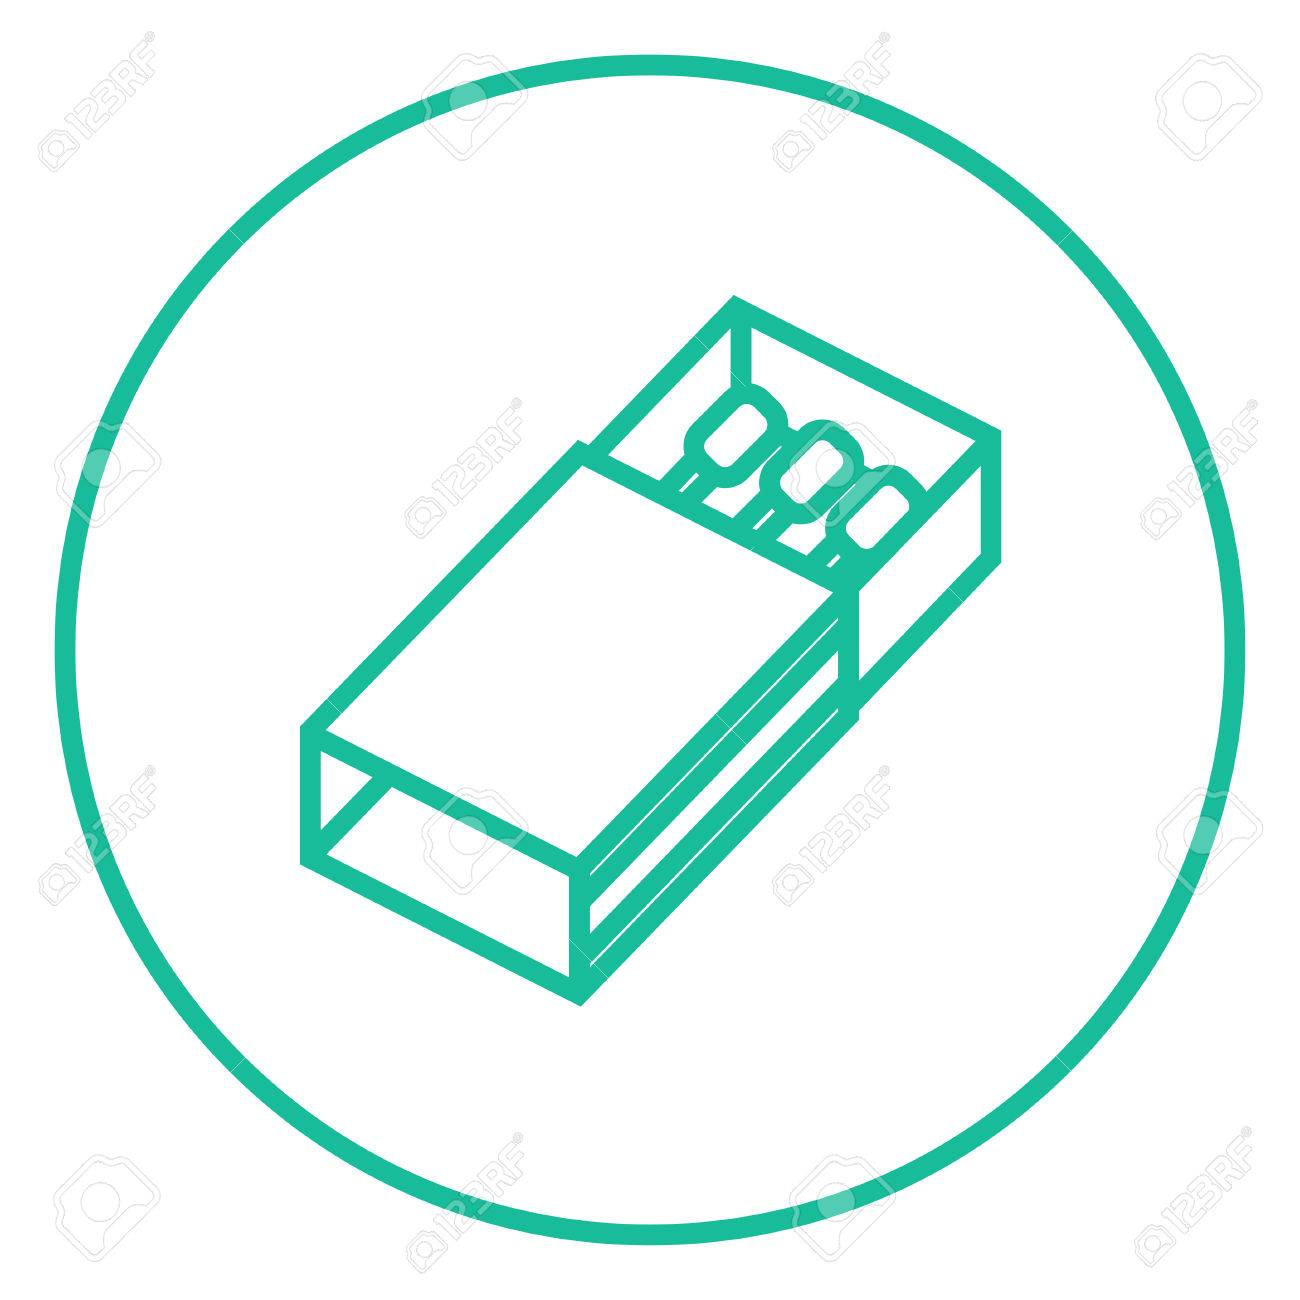 Matchbox Thick Line Icon With Pointed Corners And Edges For Web ...